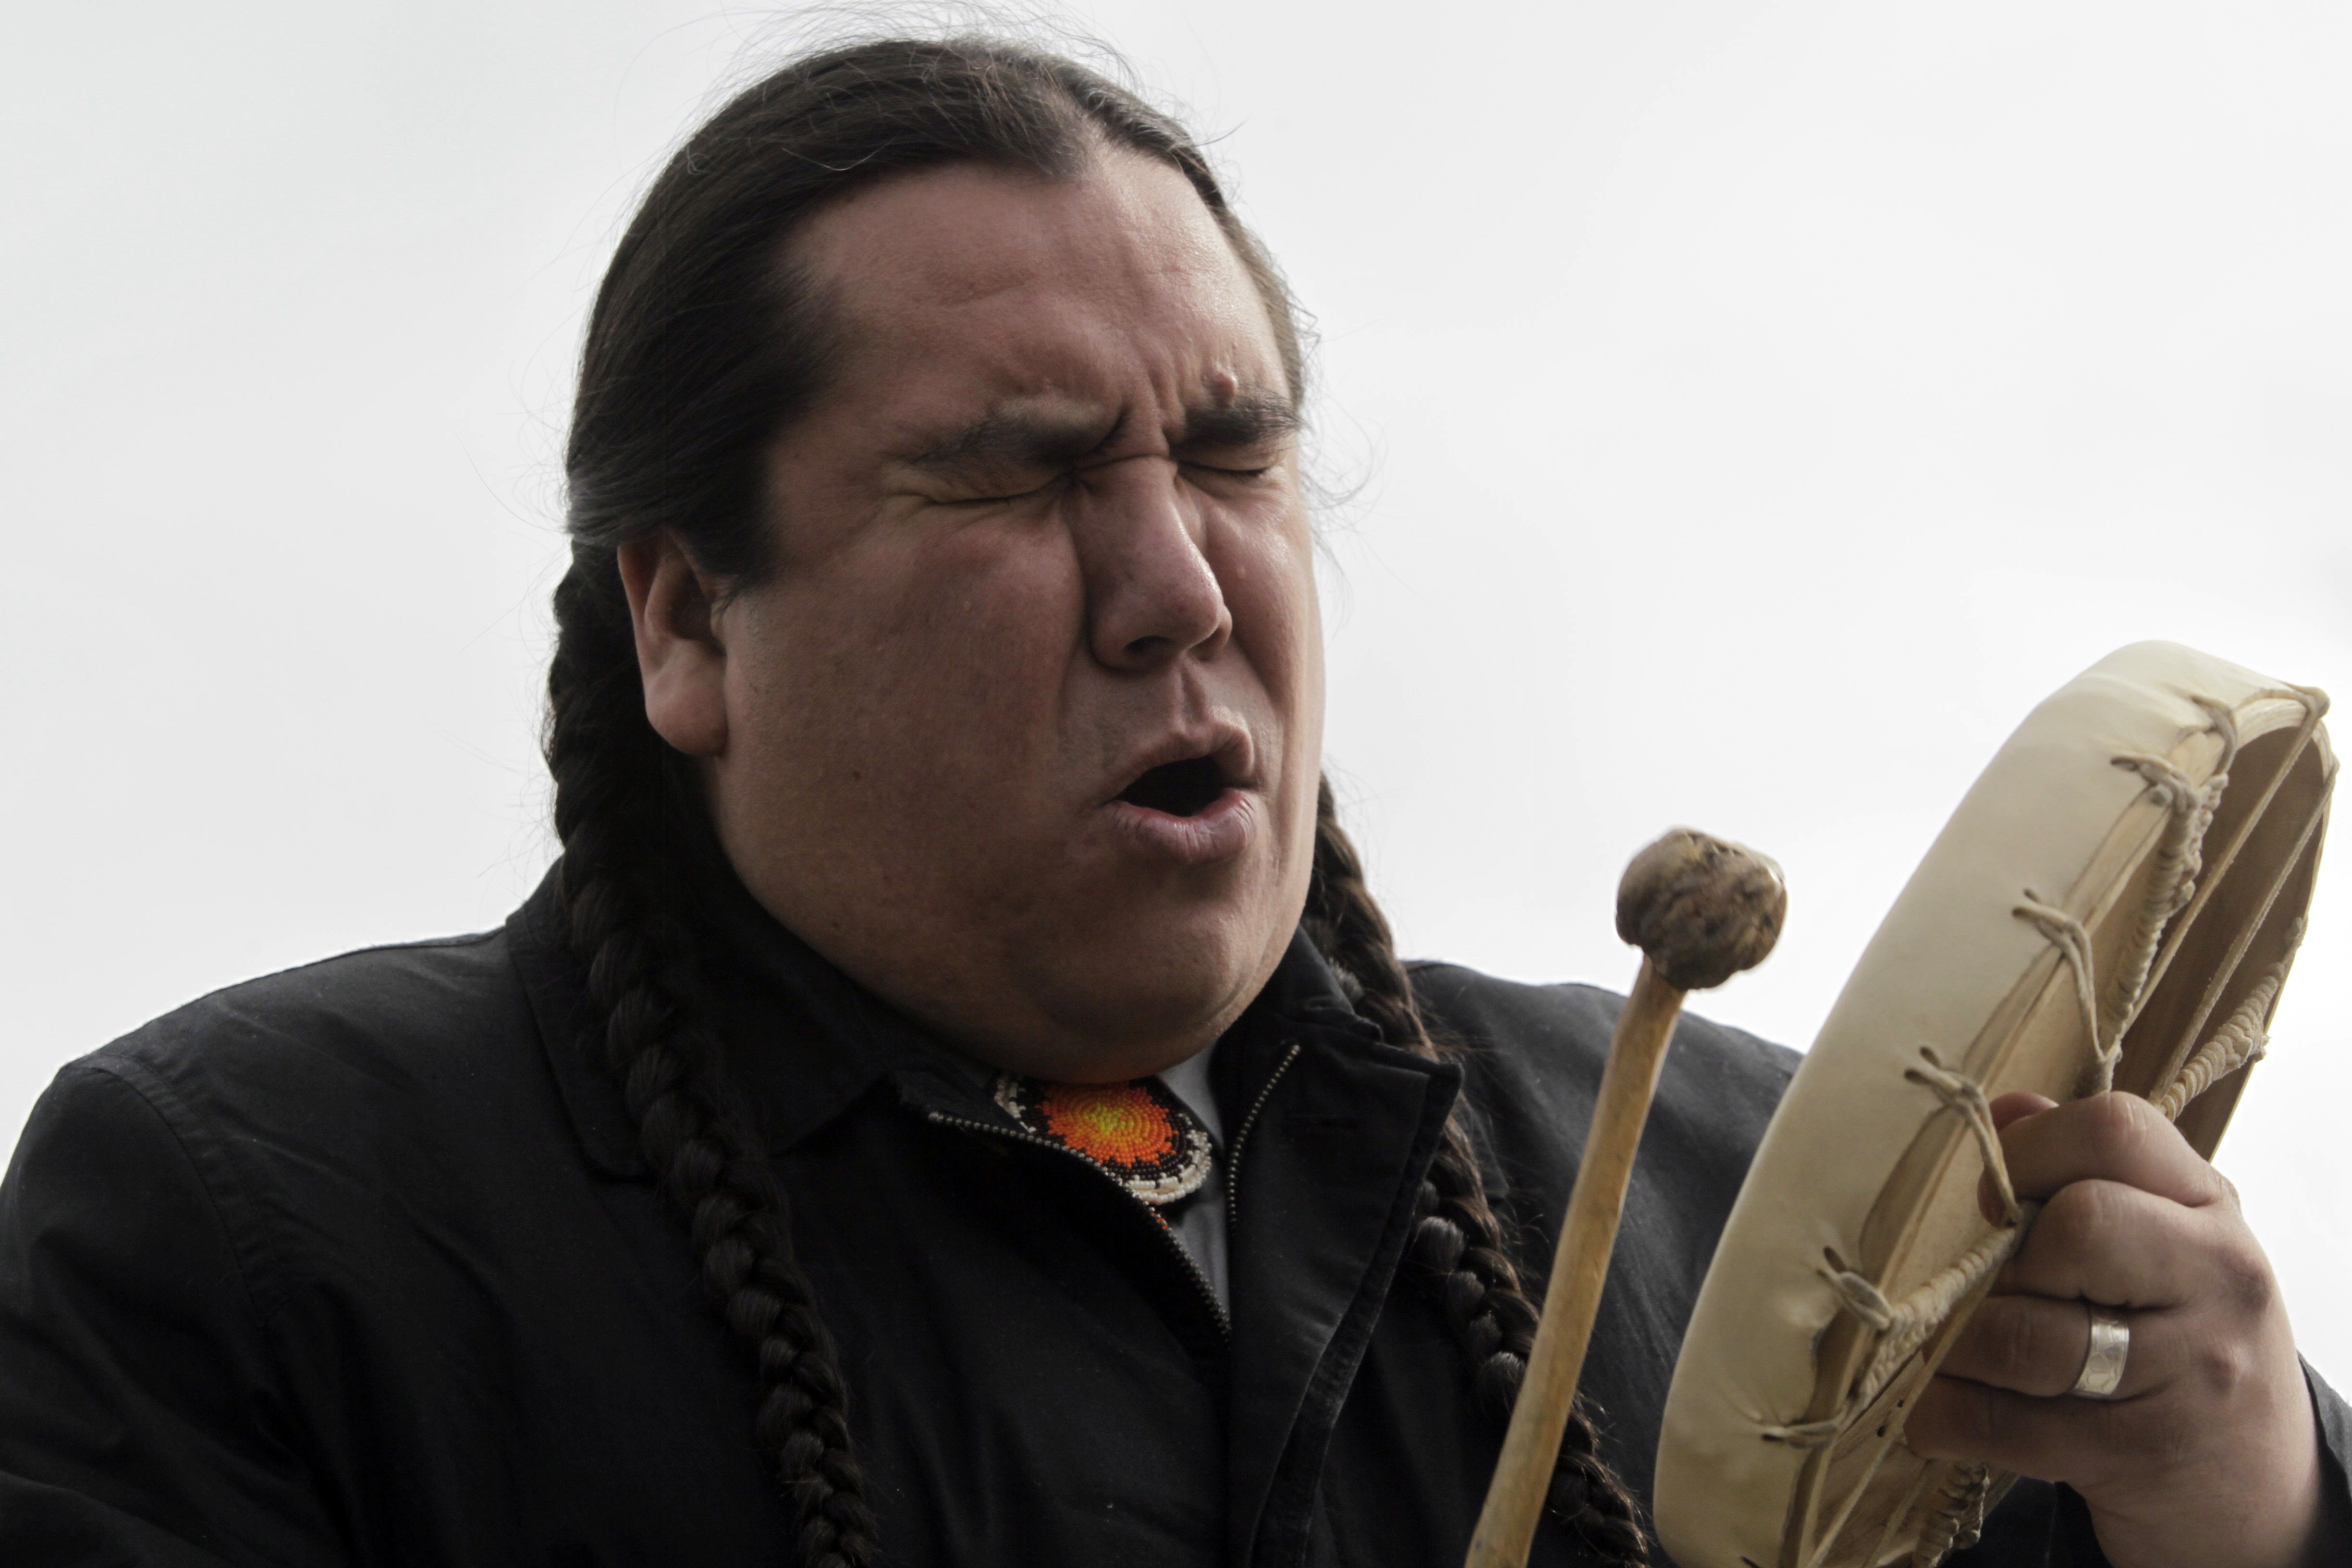 Clayton Thomas Mullen from the Indigenous Environmental Network in Canada, sings a traditional song during a protest against BP in London on April 14, 2011. (AP Photo/Lefteris Pitarakis)